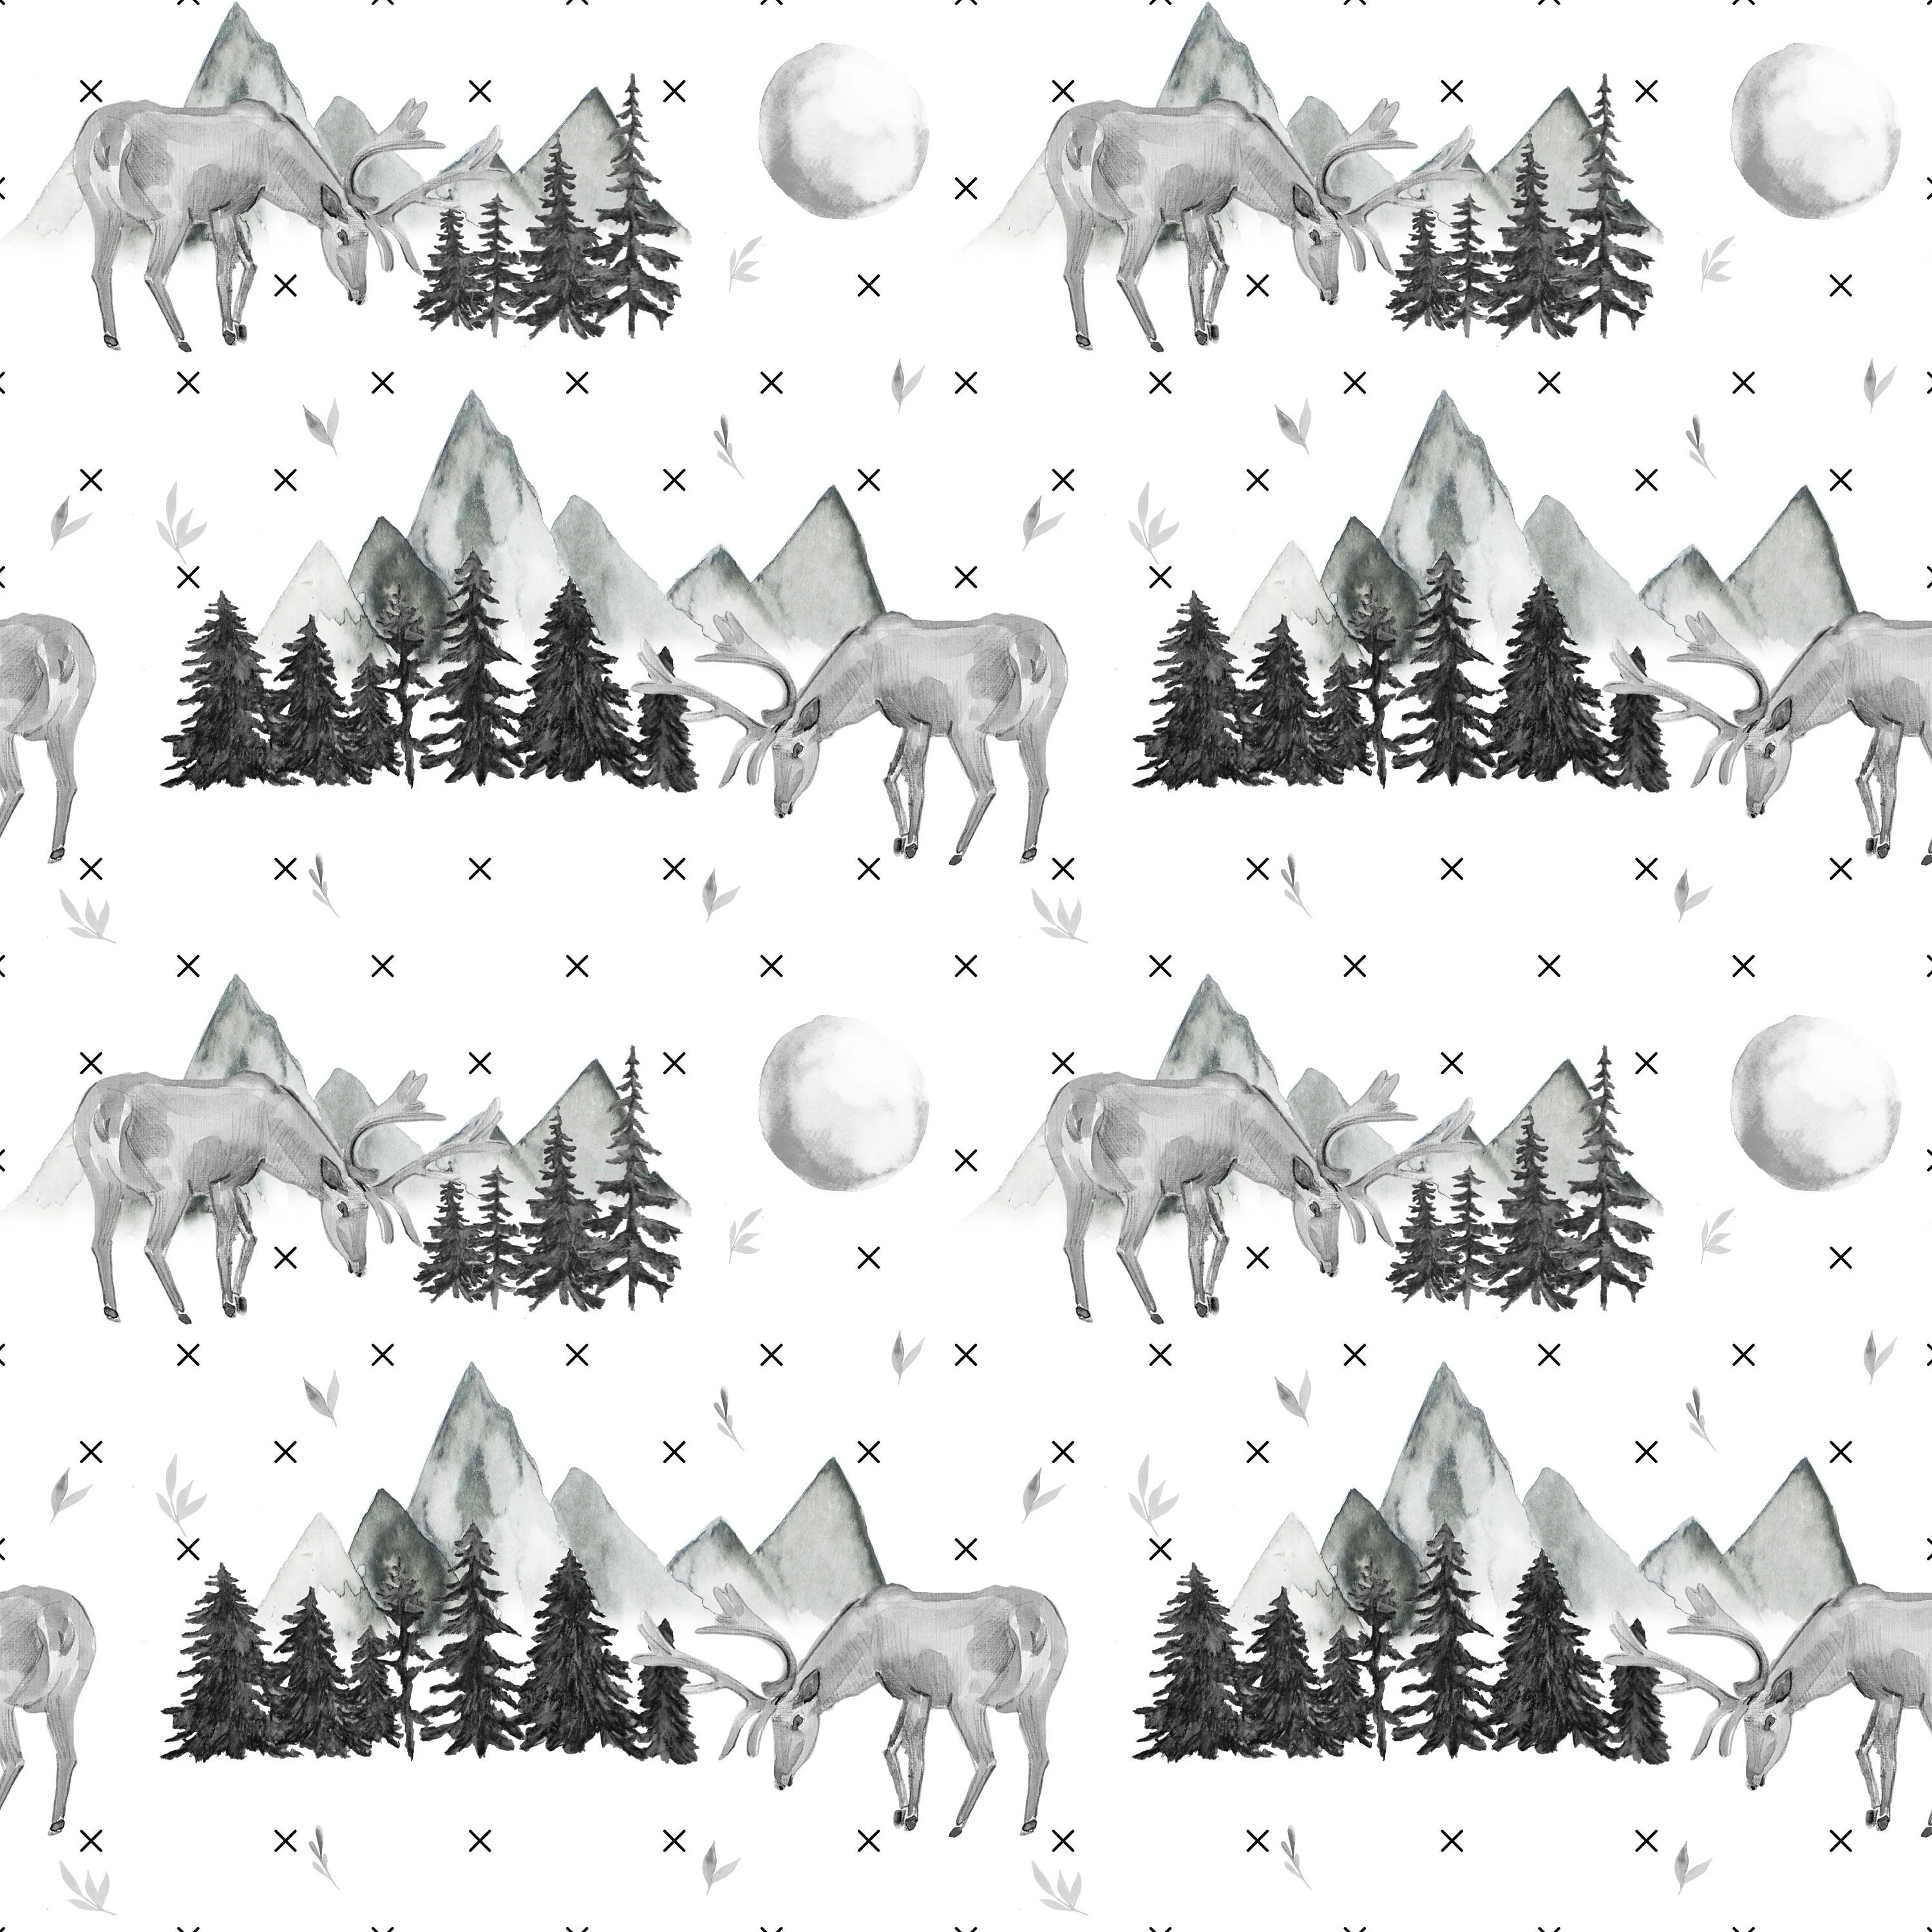 Woodland Forest Fabric by the Yard. Quilting Cotton Knit